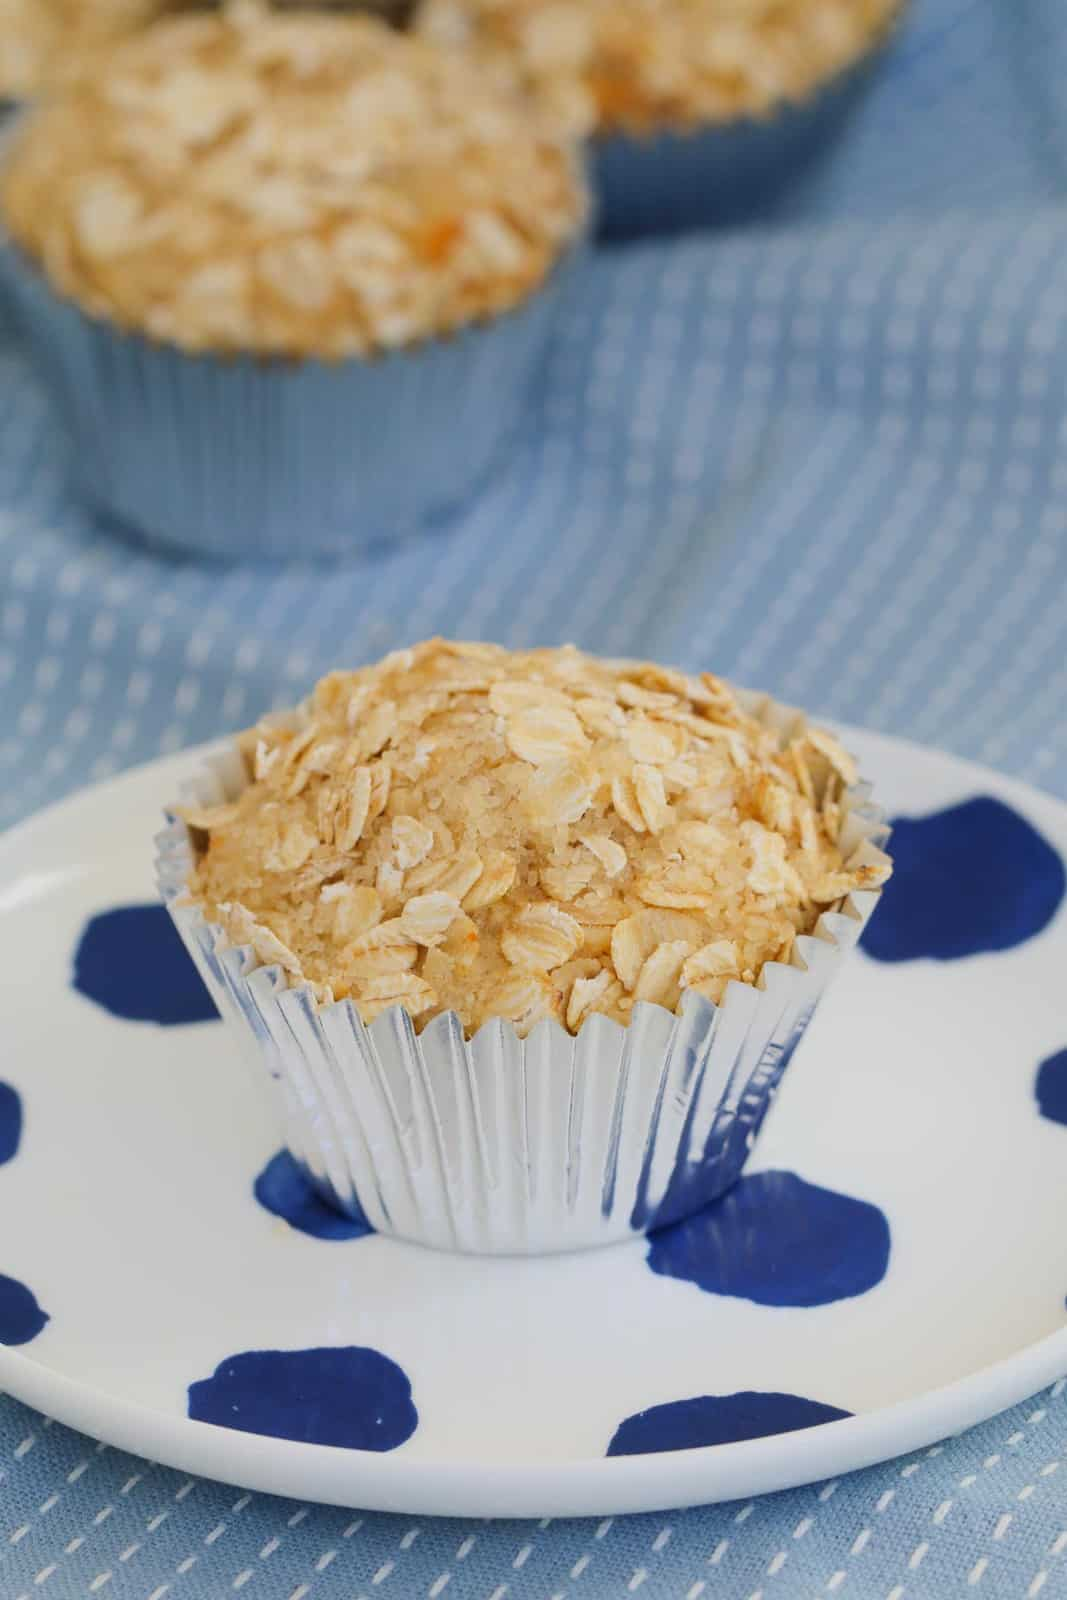 A close up shot of apple oat muffin on white plate with blue dots.